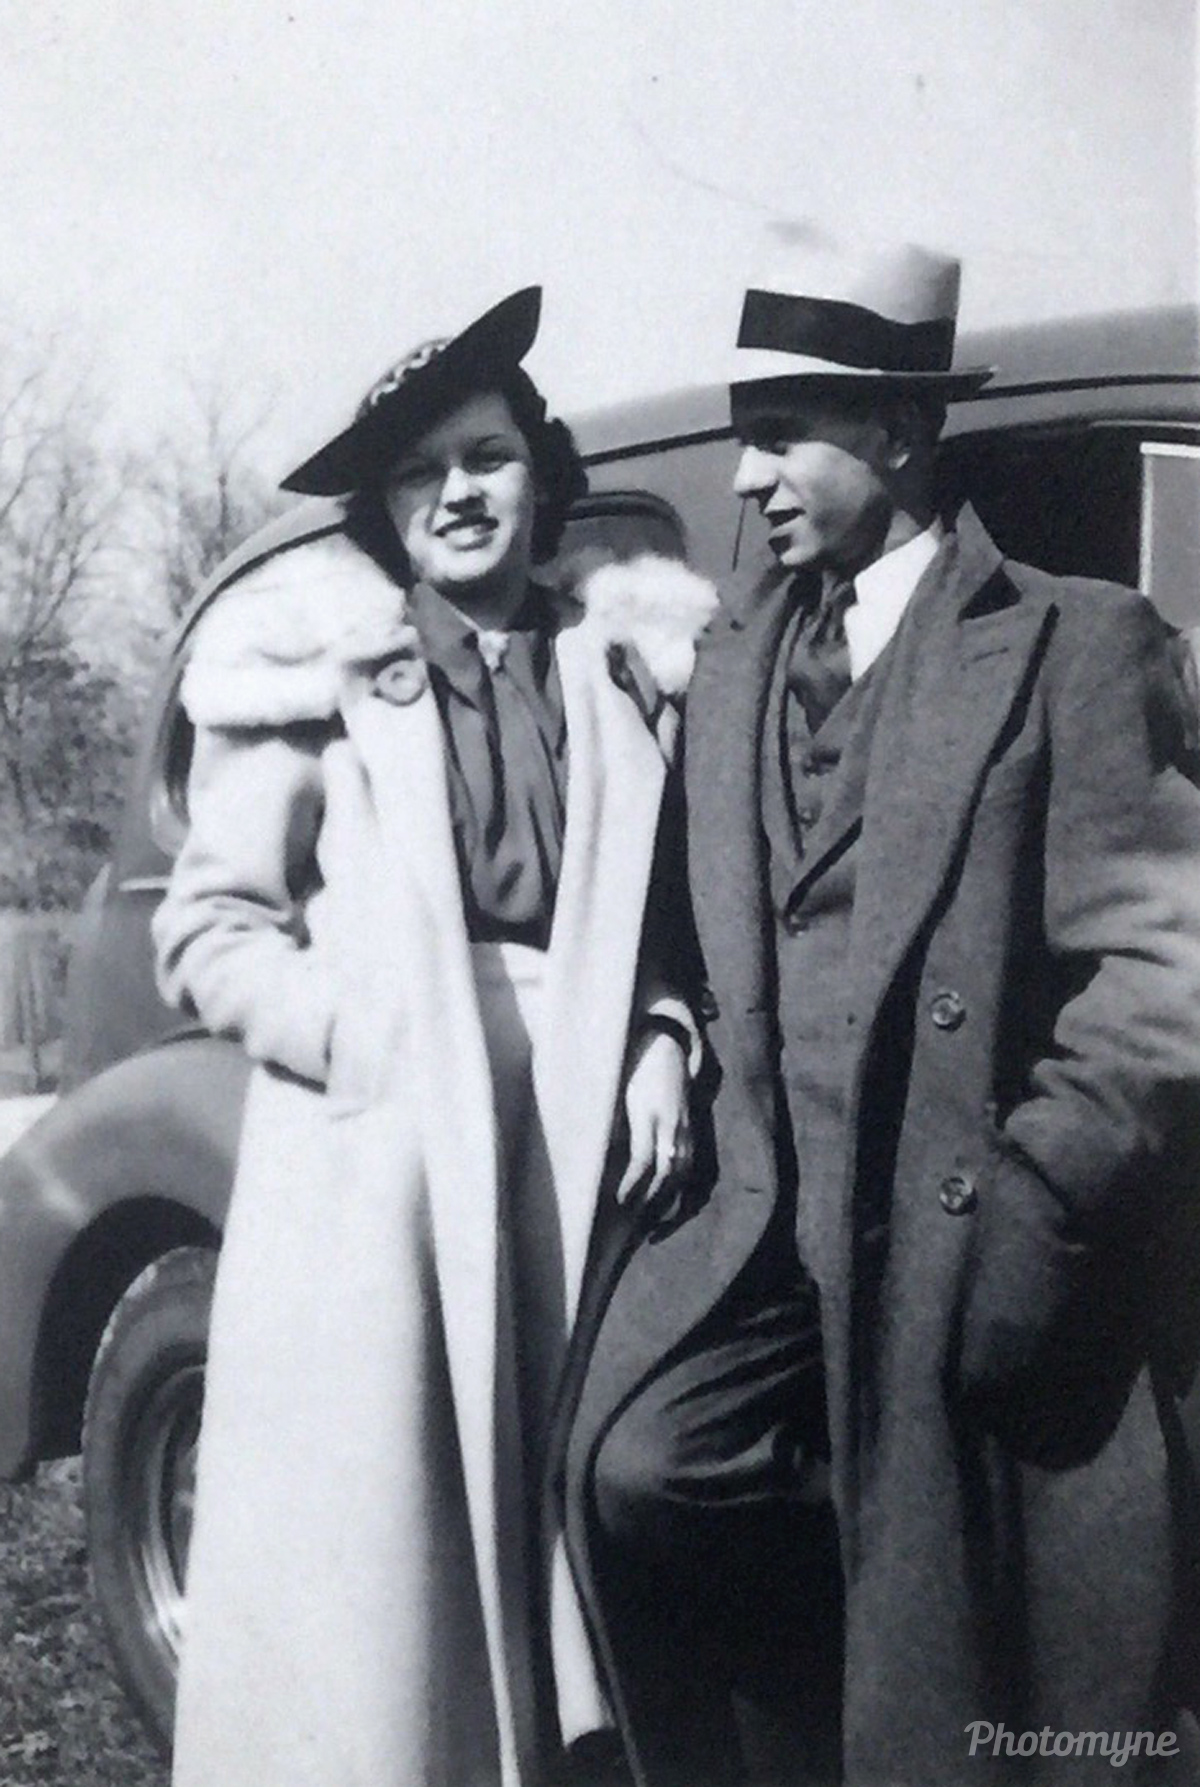 Courting. Indiana, USA 1937